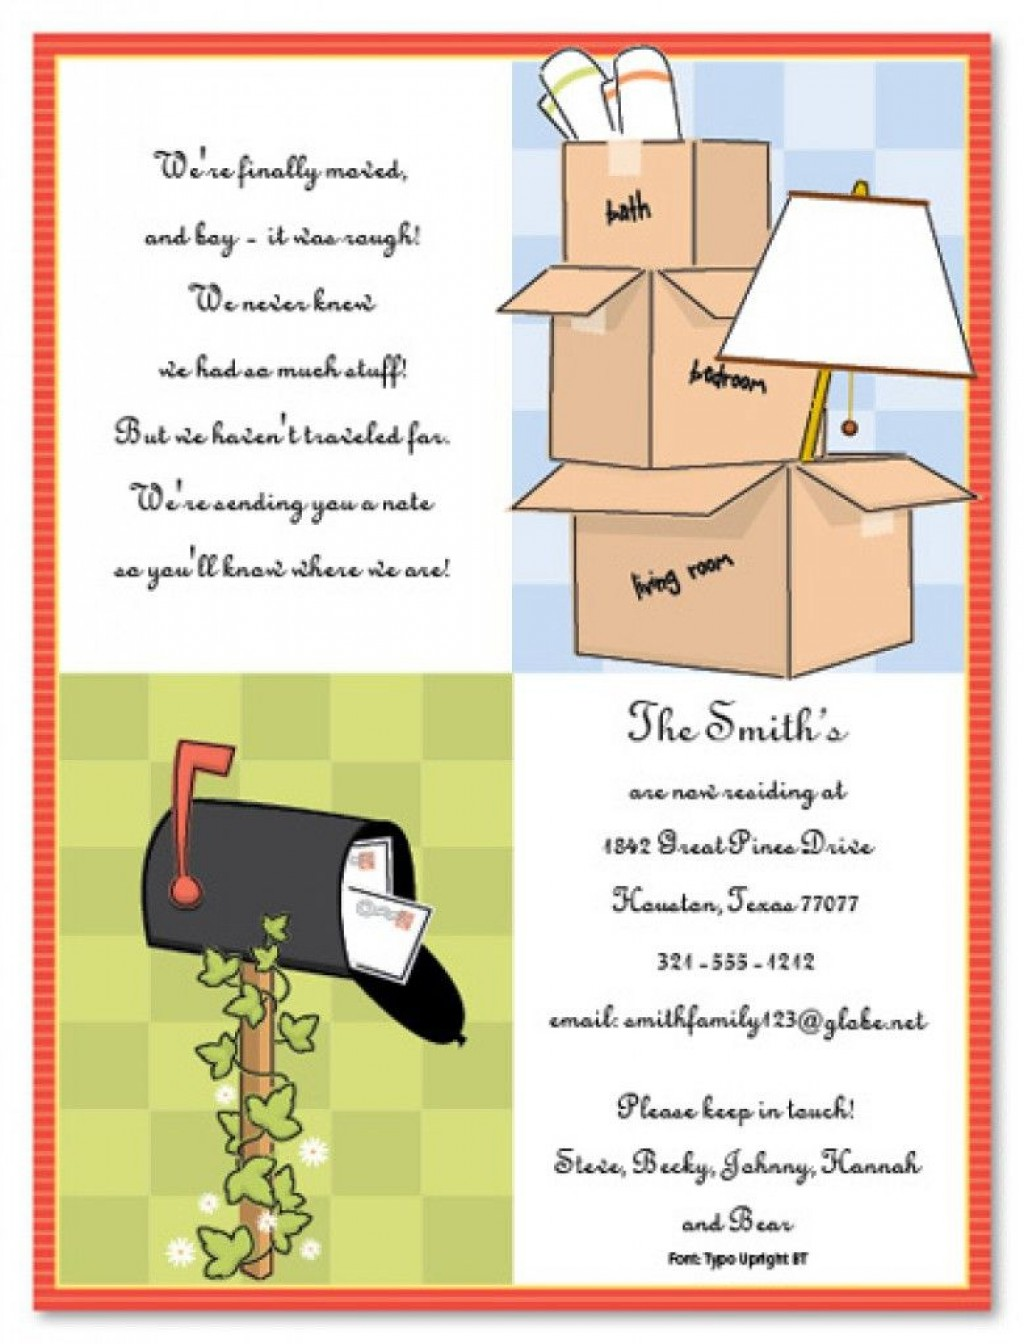 006 Astounding Housewarming Party Invitation Template High Definition  Templates Free Download CardLarge